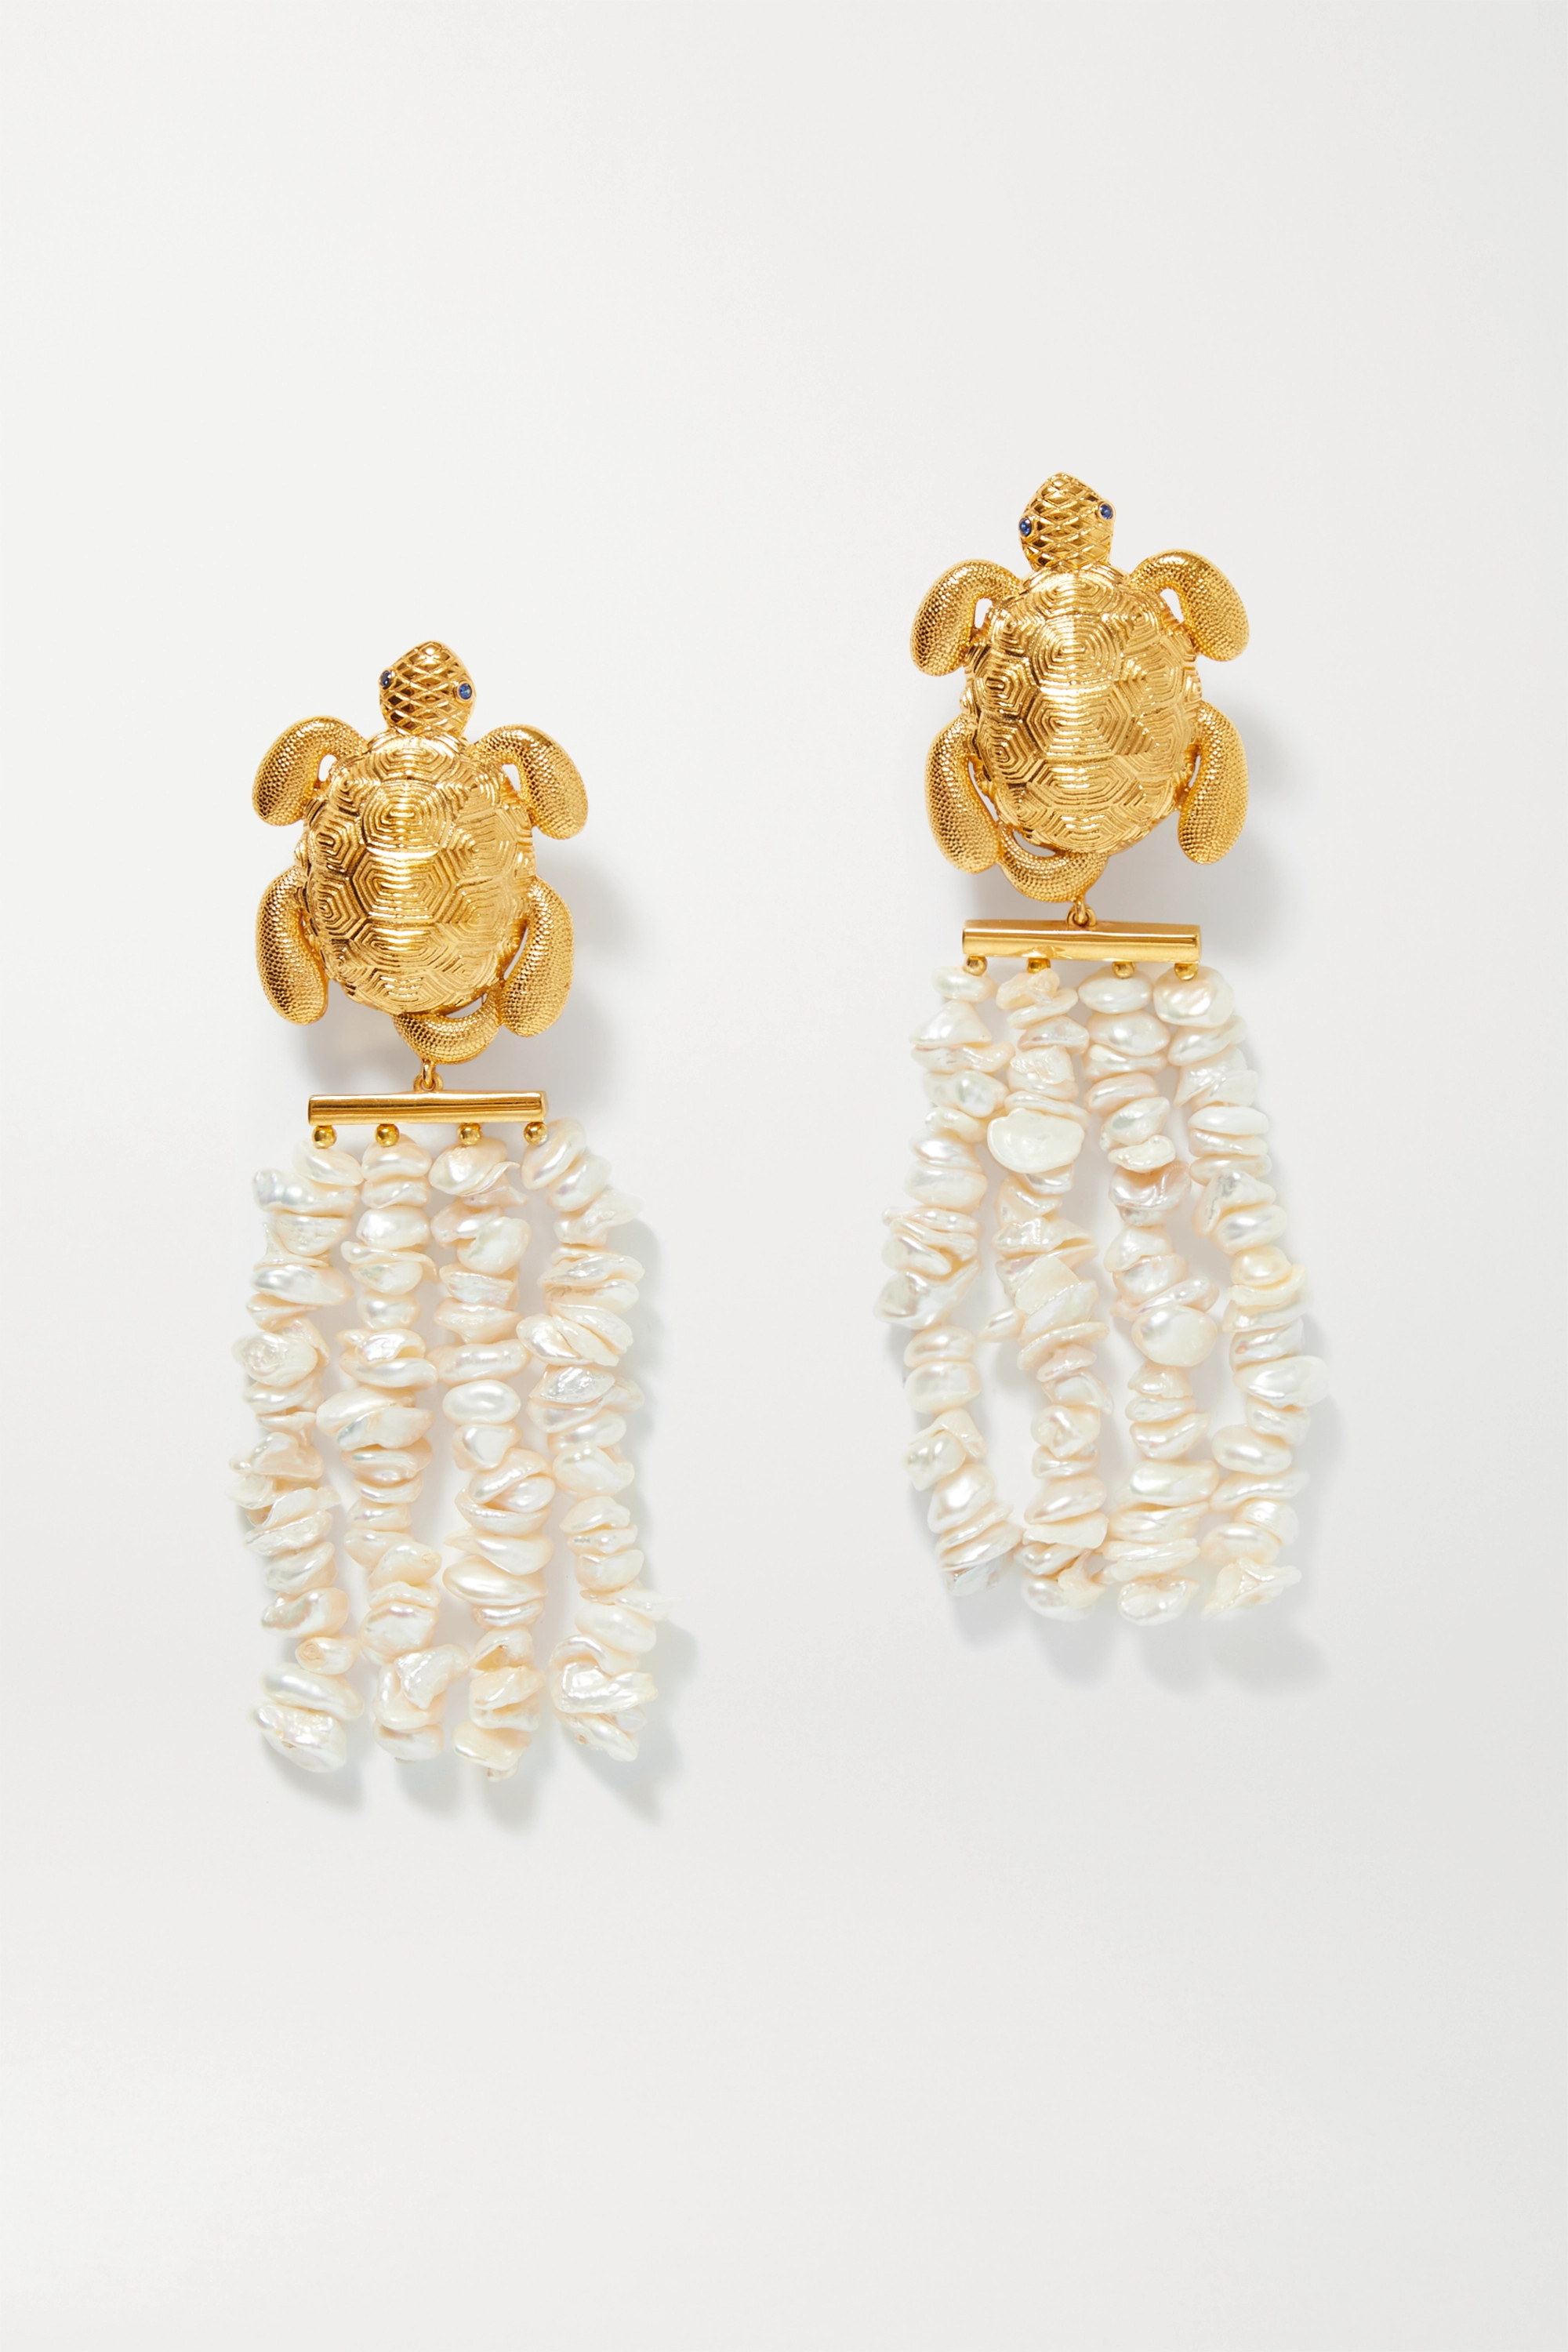 Begüm Khan Tortuga Florence gold-plated, pearl and crystal clip earrings